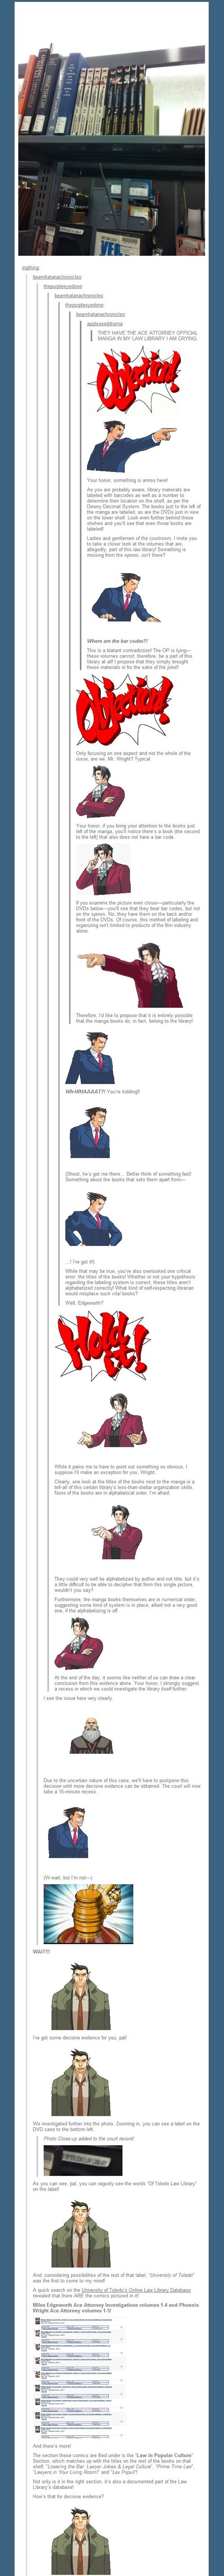 phoenix wright,tumblr,case closed,libraries,video games